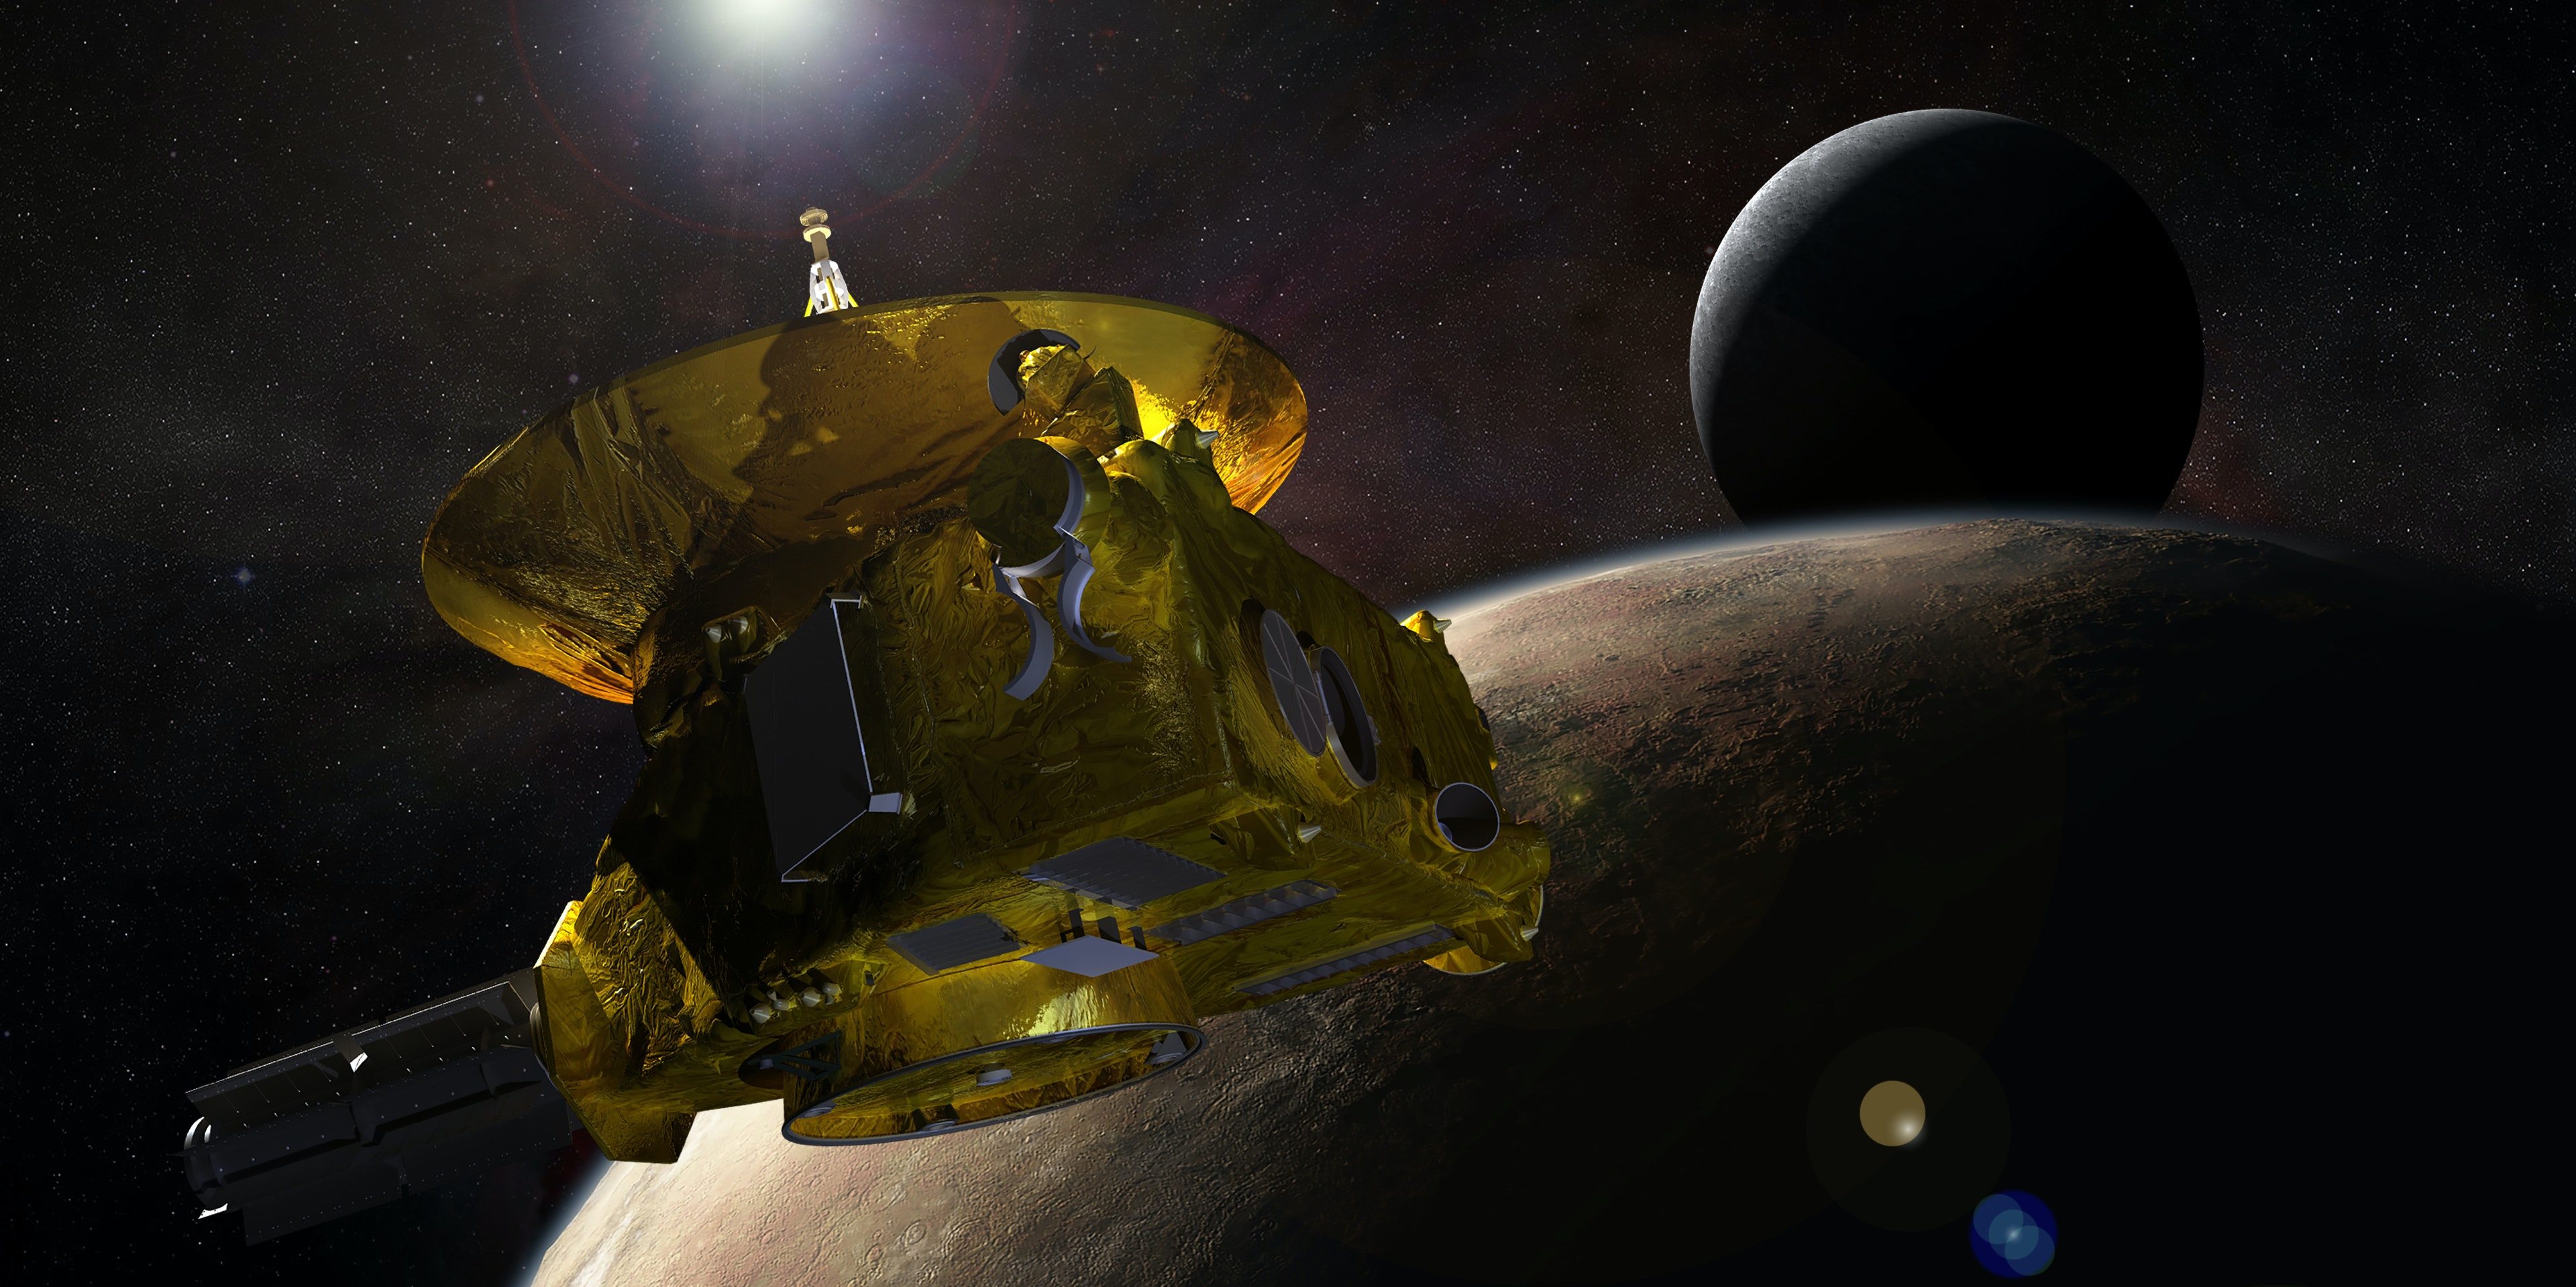 New Horizons approaching Pluto and its moon Charon